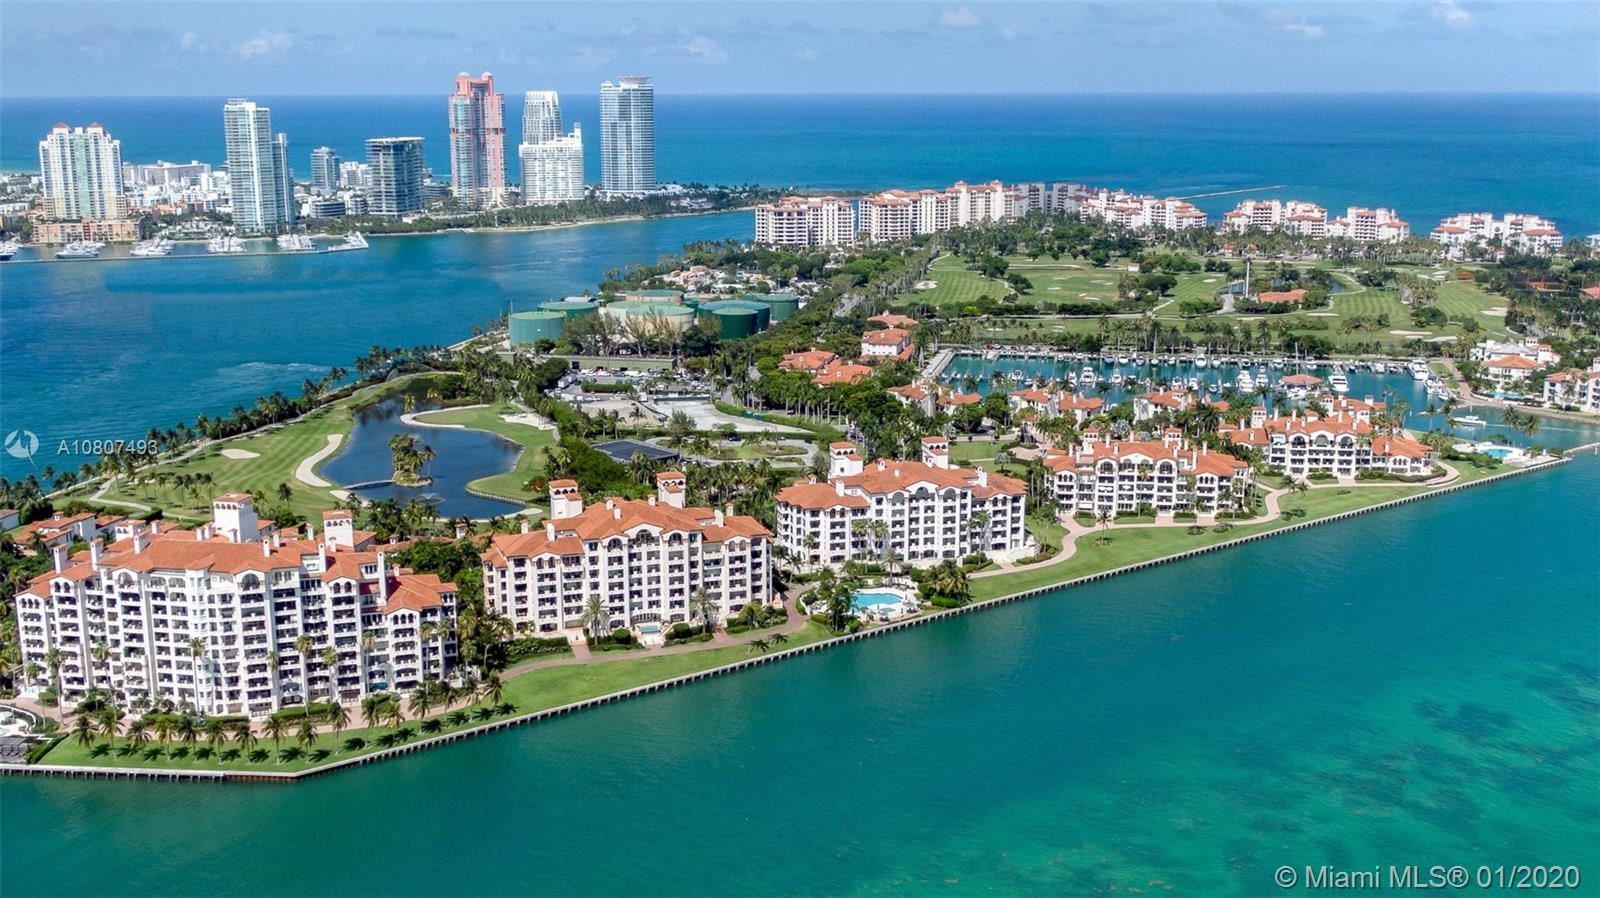 Photo 34 of Listing MLS a10807493 in 7021 Fisher Island Dr #7021 Miami Beach FL 33109